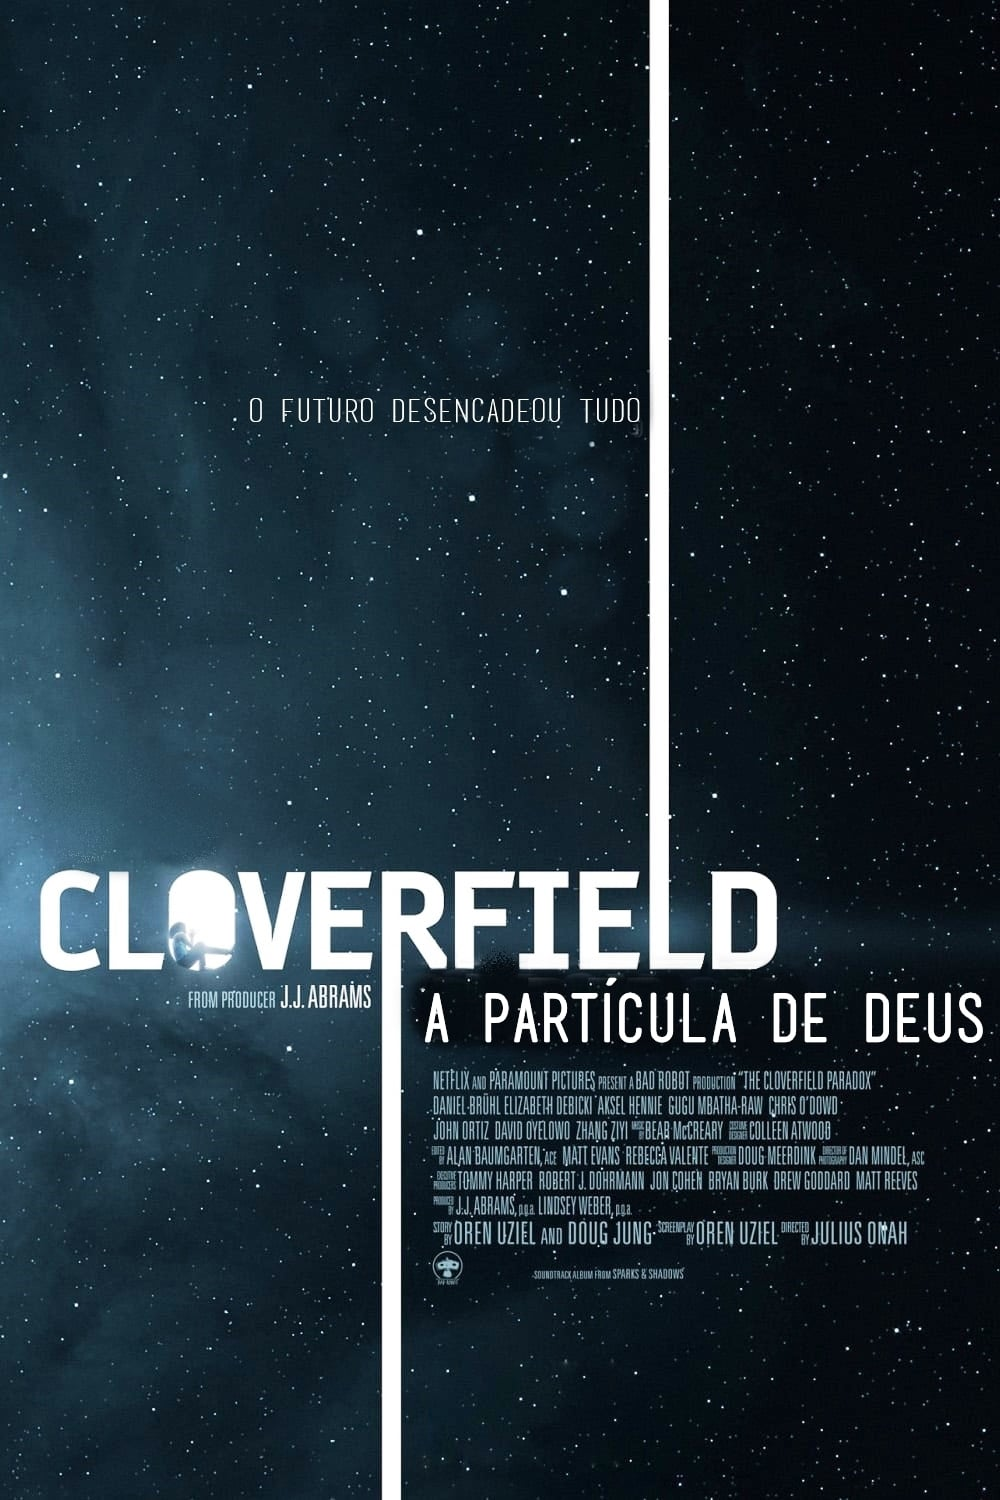 Cloverfield A Partícula de Deus Torrent (2018) Dual Áudio 5.1 Dublado WEB-DL 1080p Download